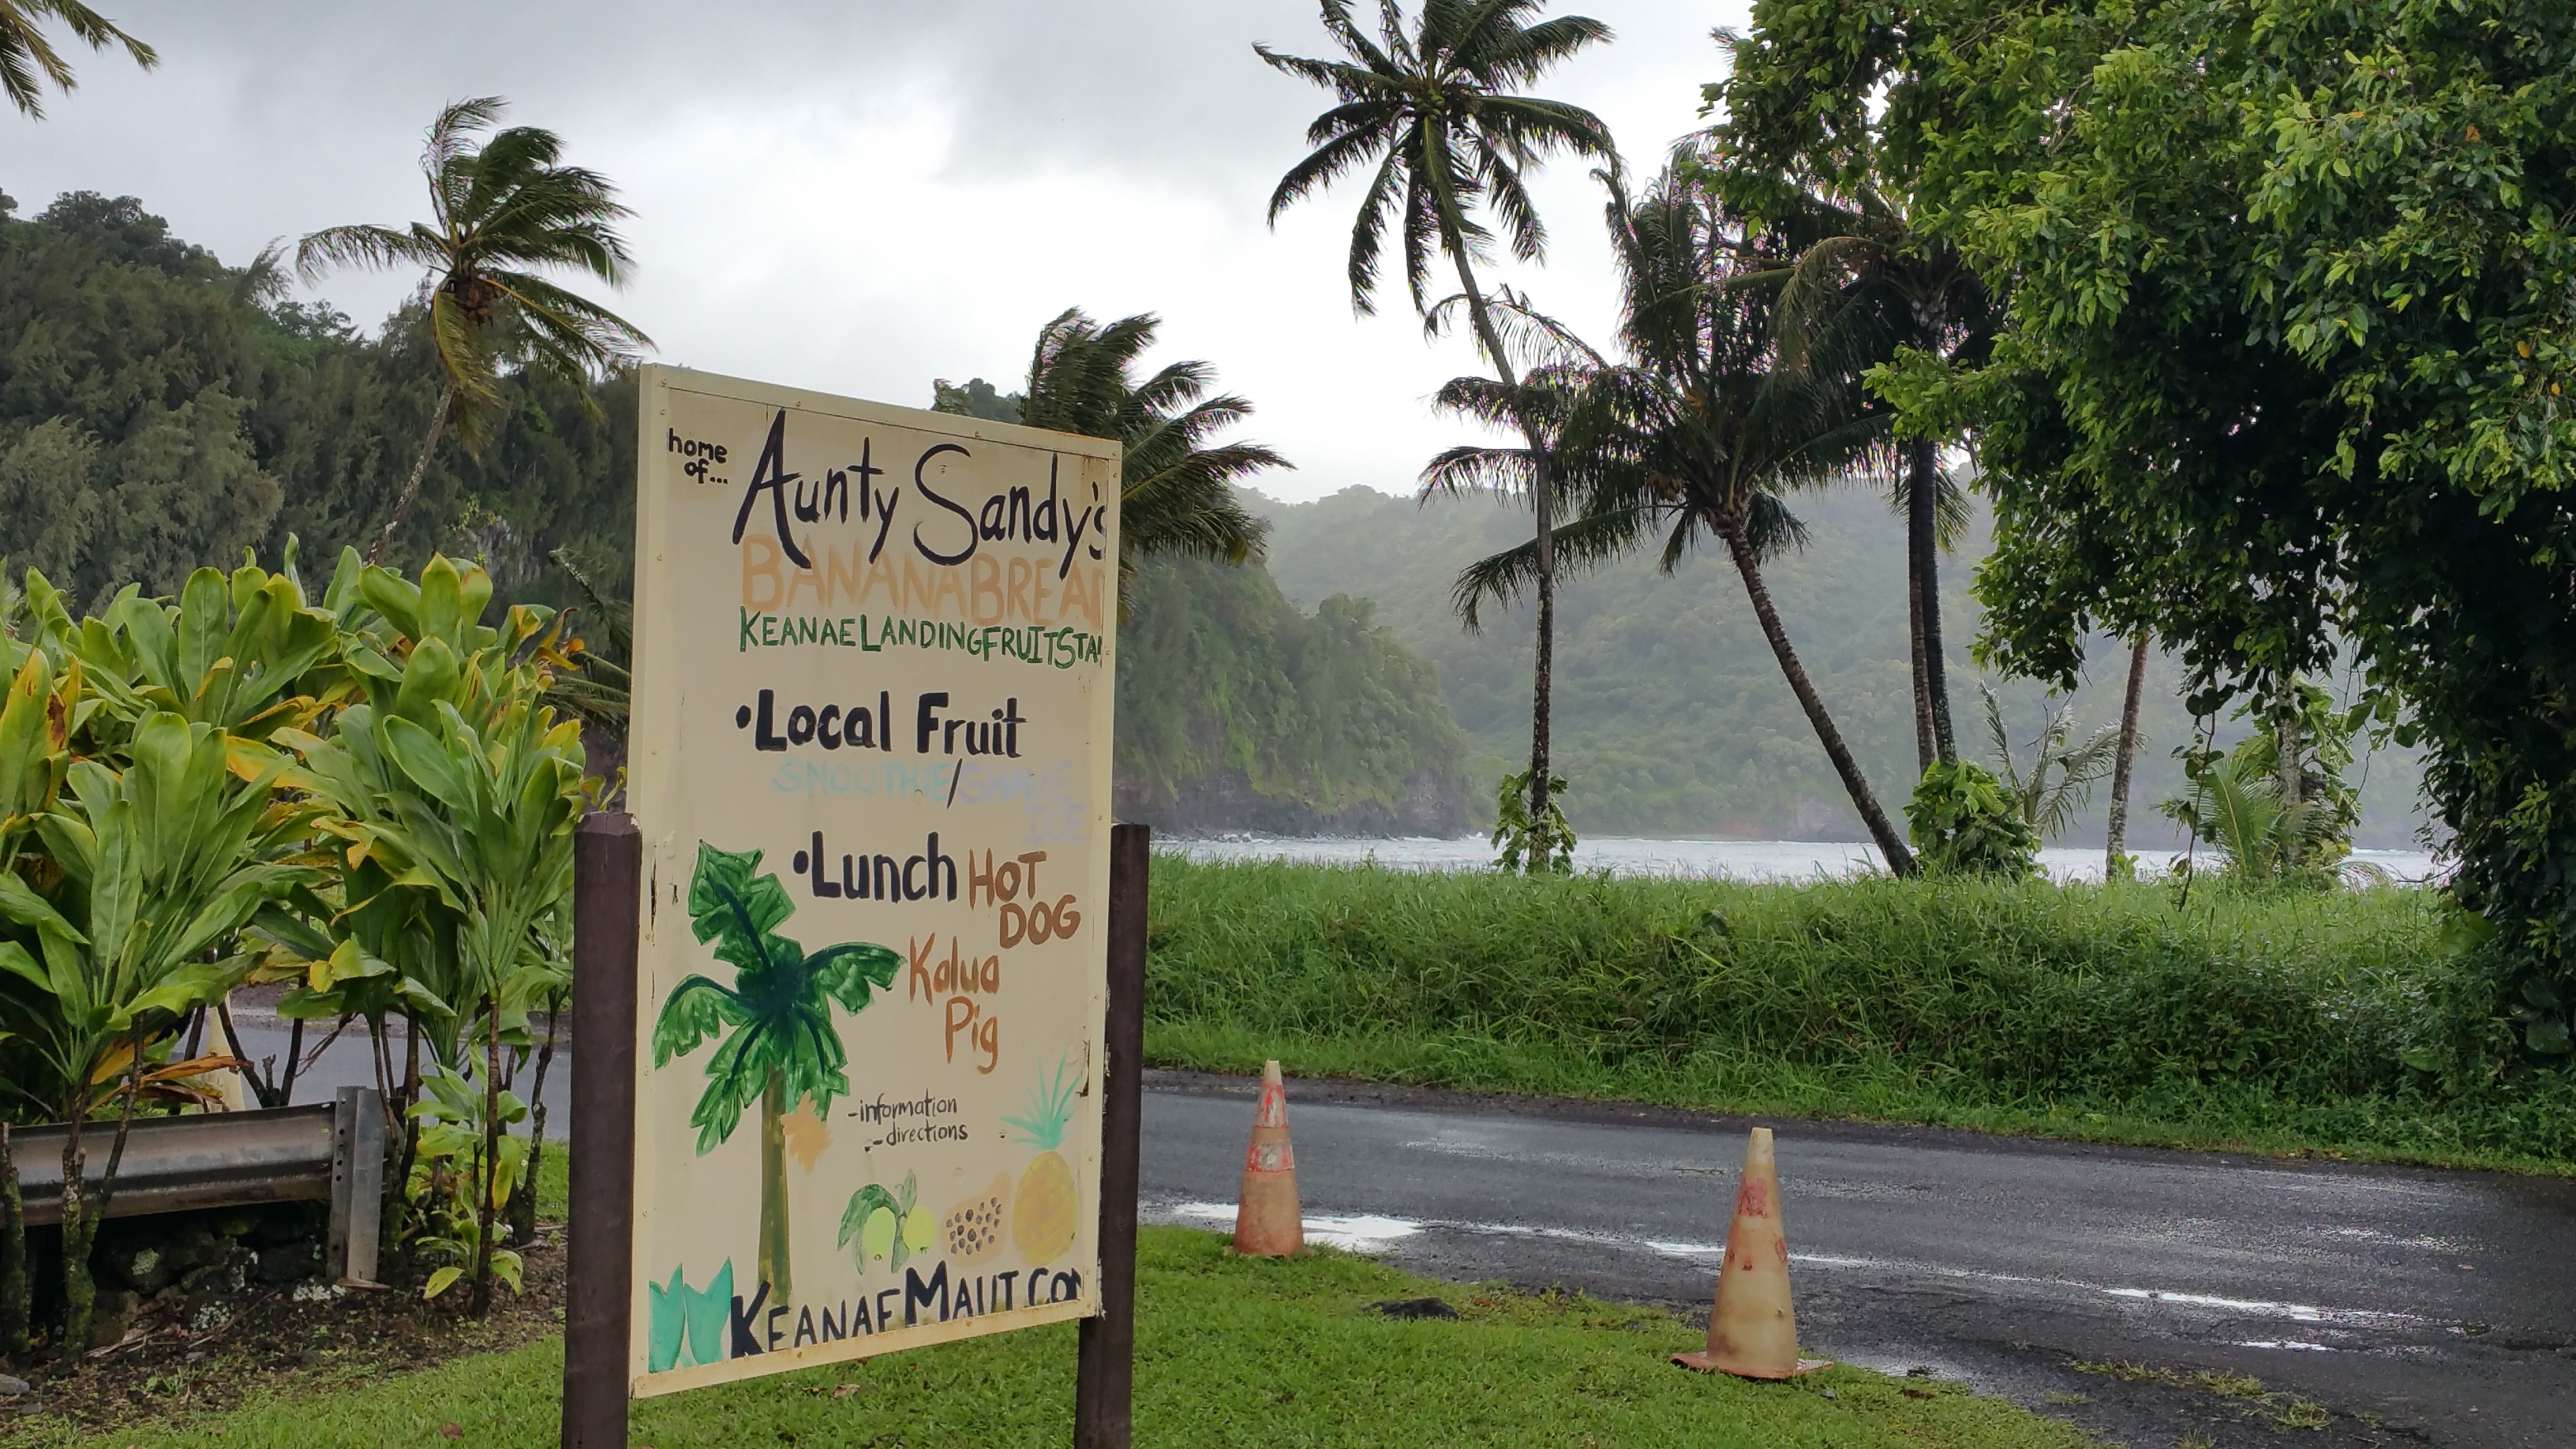 Aunty Sandy's Banana Bread. Road to Hana. Best banana bread on Maui.